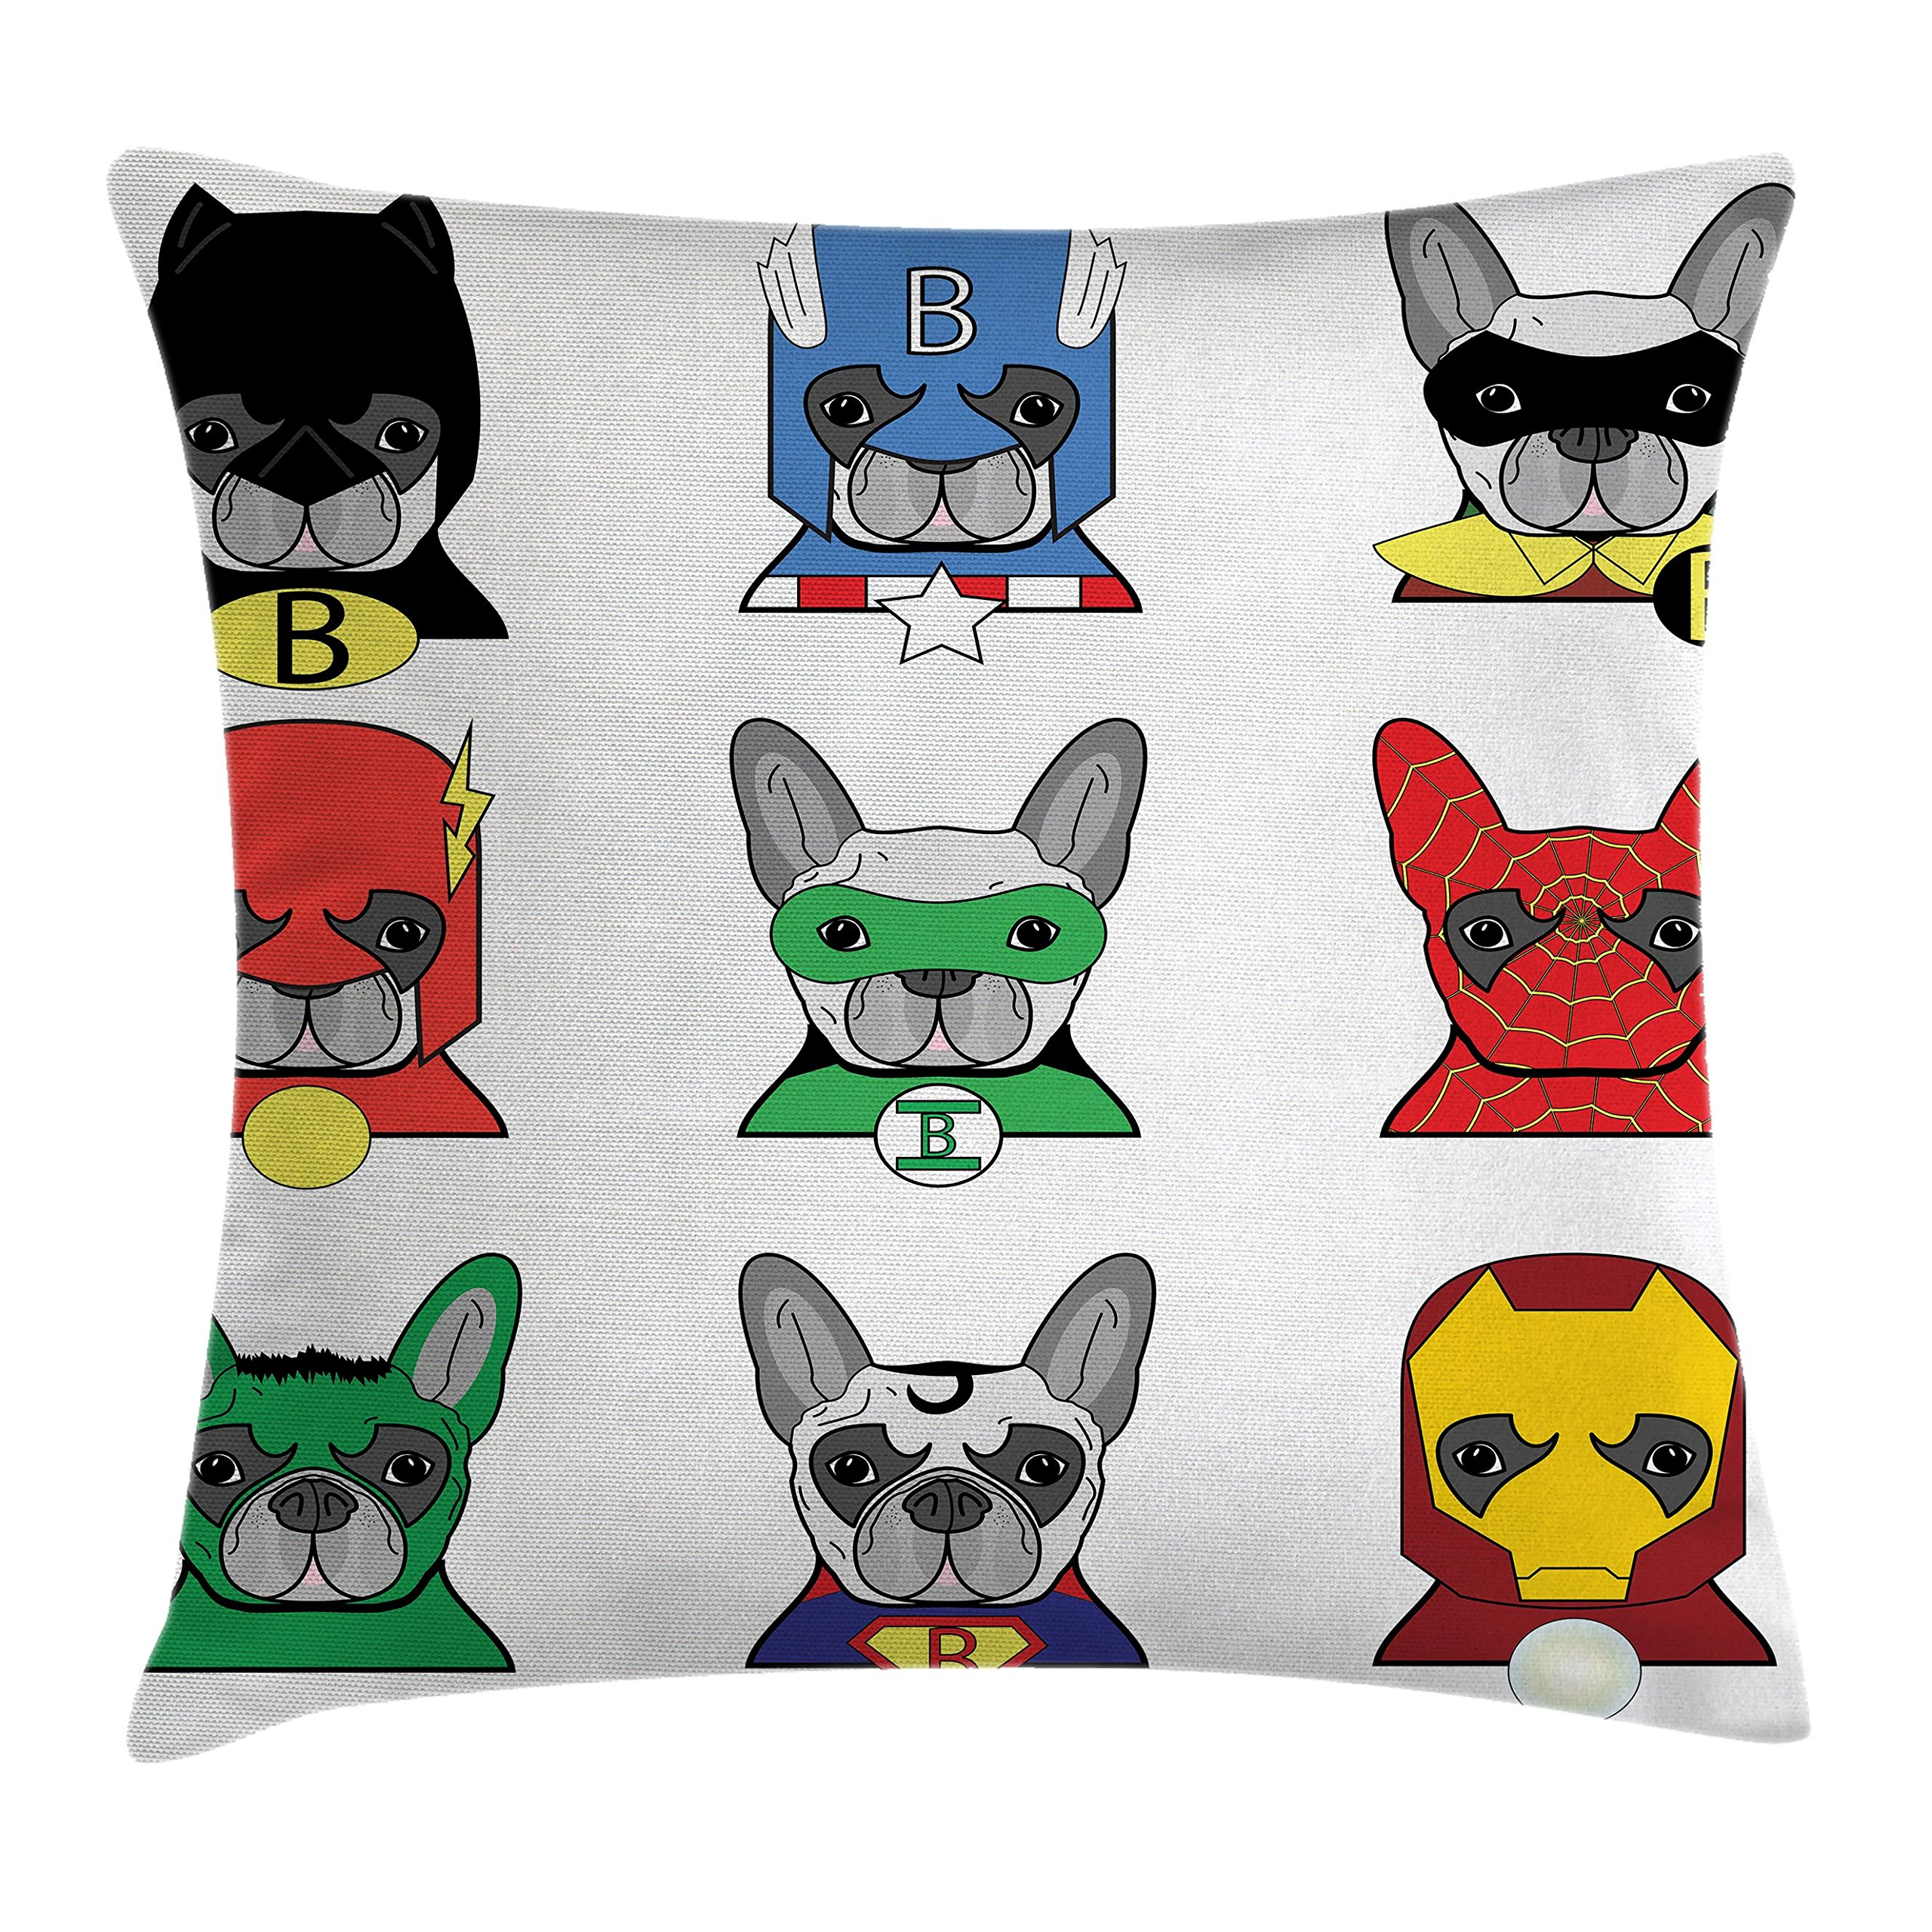 """Ambesonne Superhero Throw Pillow Cushion Cover, Bulldog Superheroes Fun Cartoon Puppies in Disguise Costume Dogs with Masks Print, Decorative Square Accent Pillow Case, 20"""" X 20"""", Green White"""